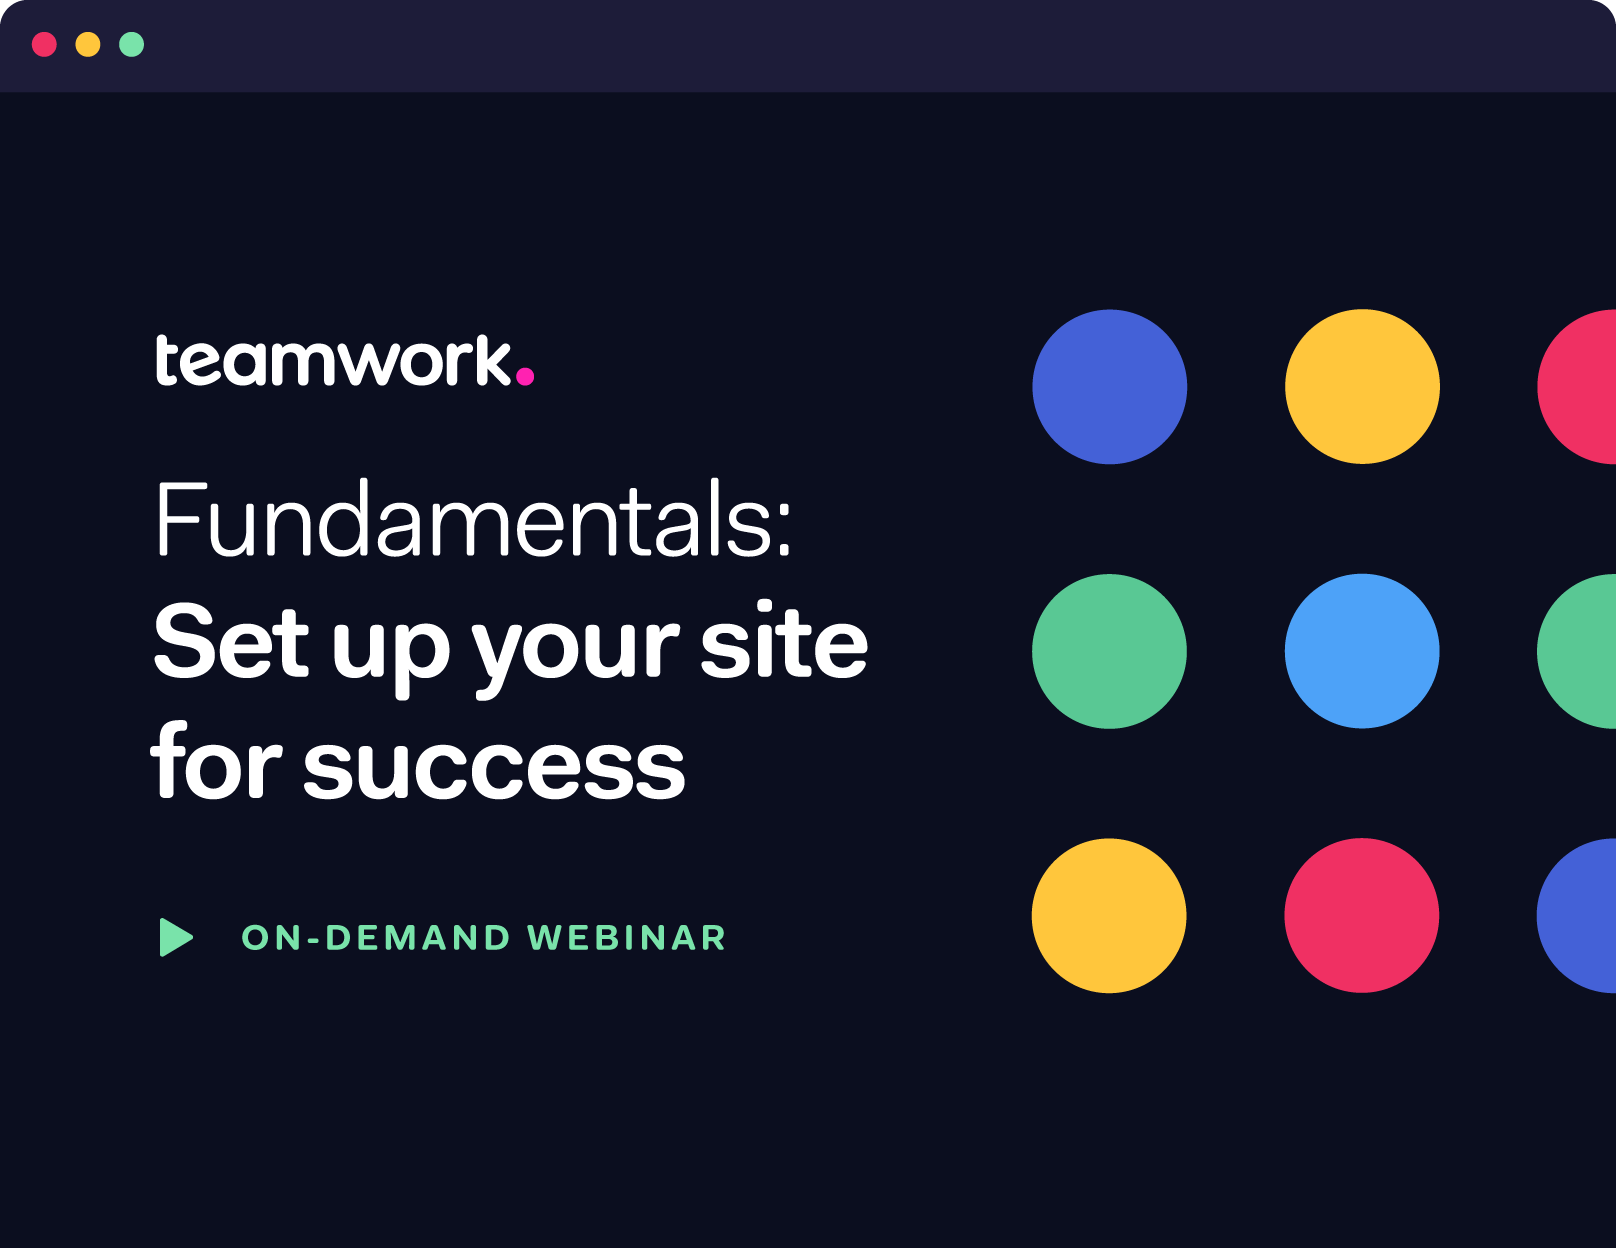 Fundamentals: Set up your site for success